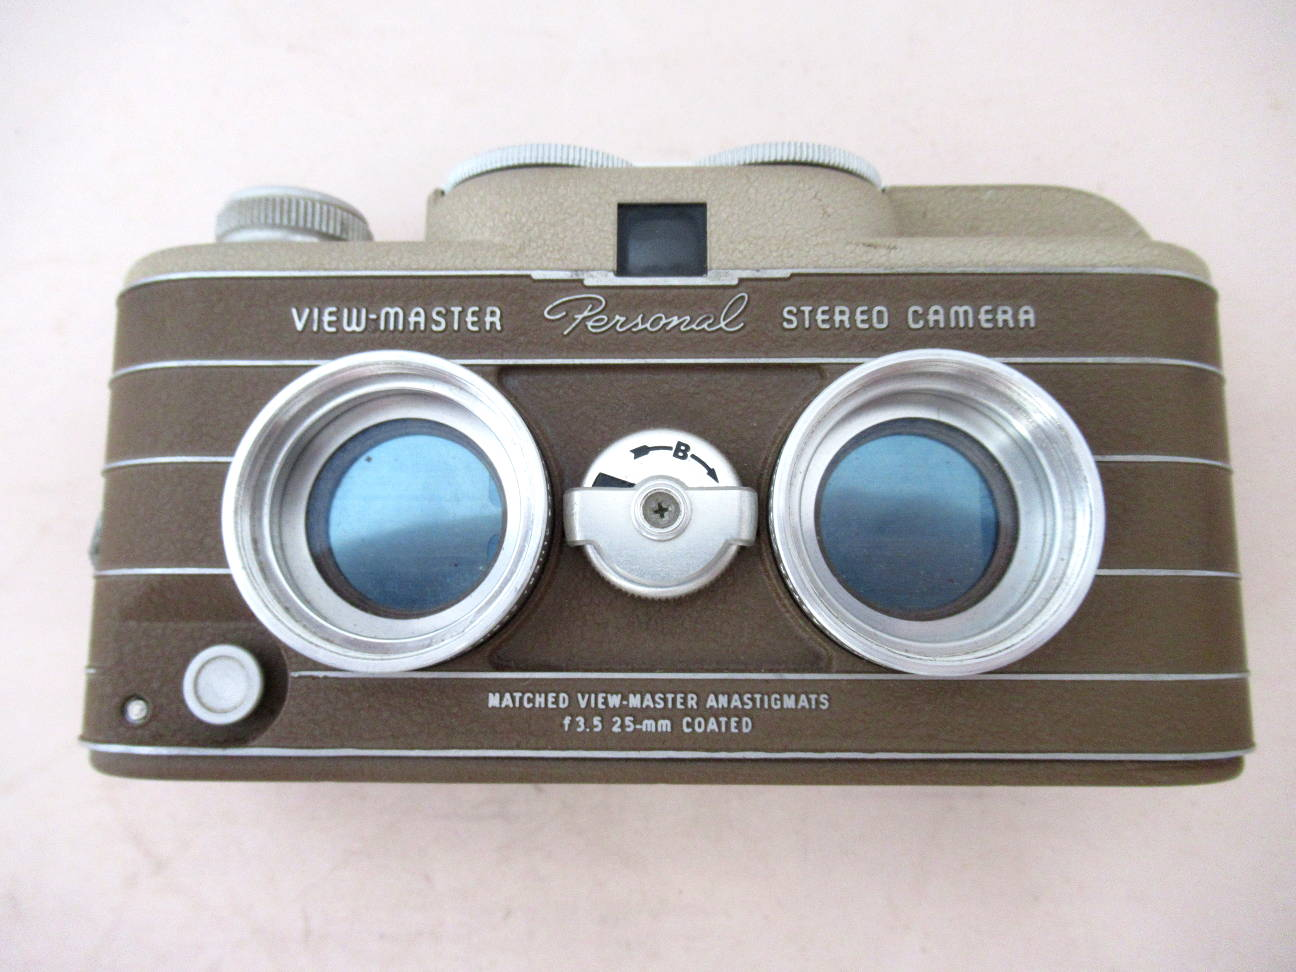 jpgodd/viewmaster_personel_stereo_IMG_0602.JPG